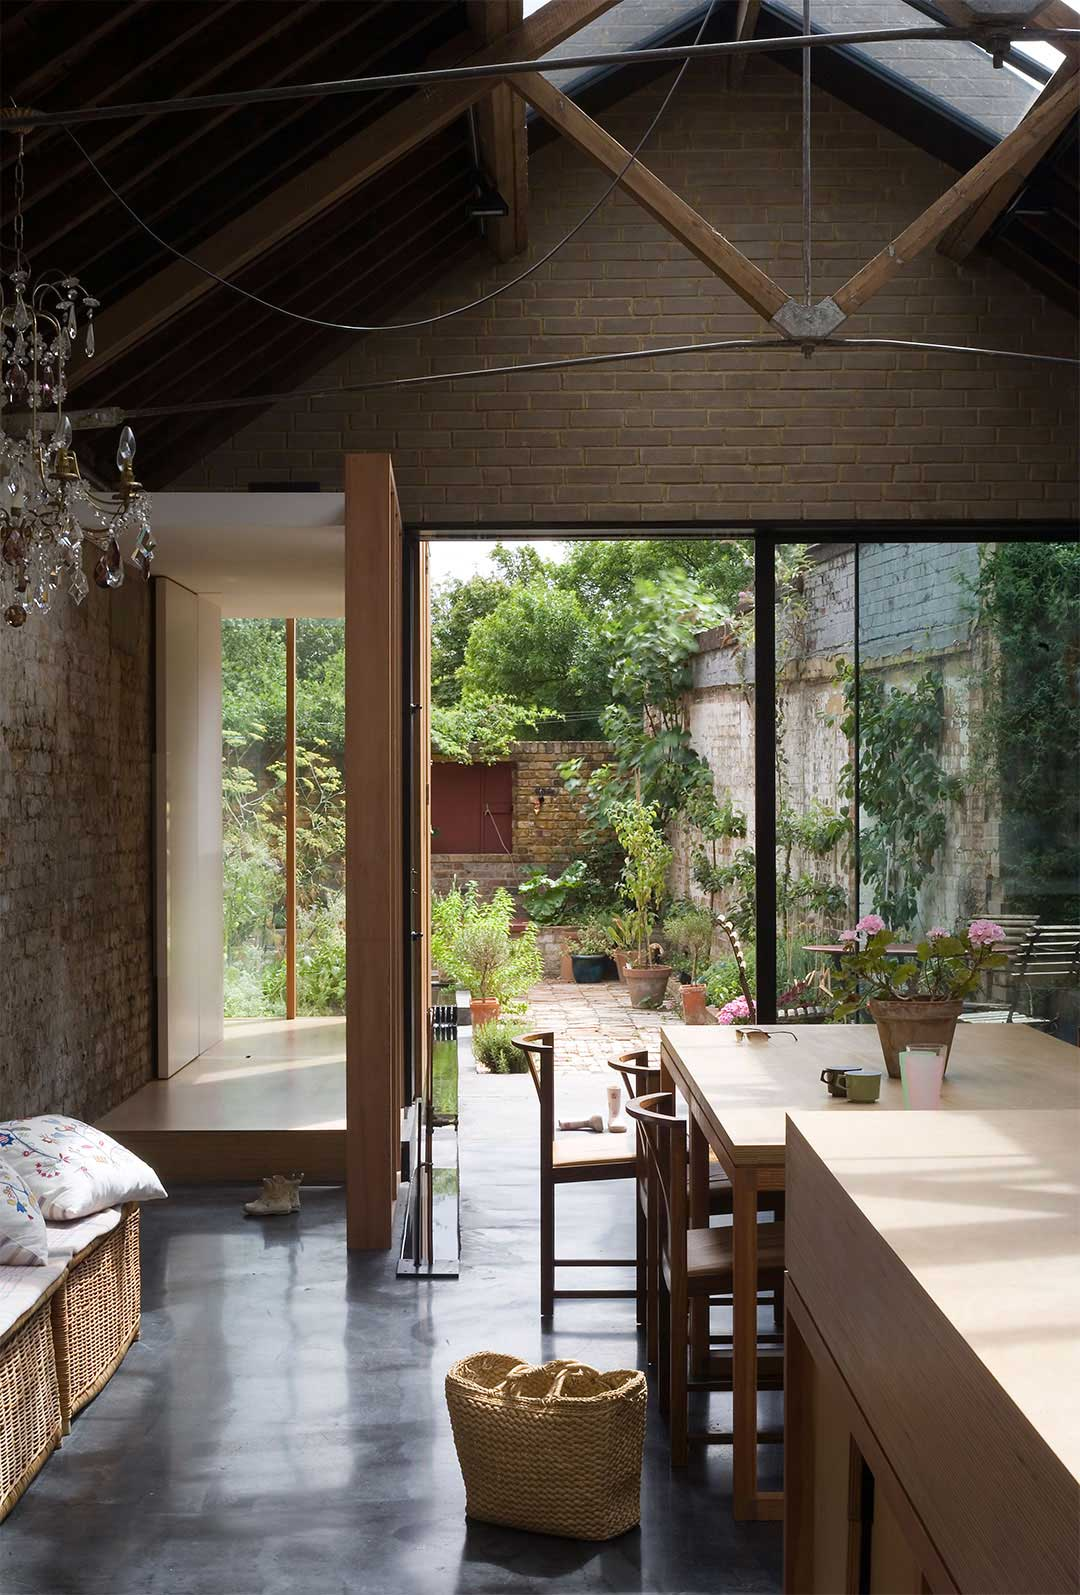 Collage House by Jonathan Tuckey | Yellowtrace